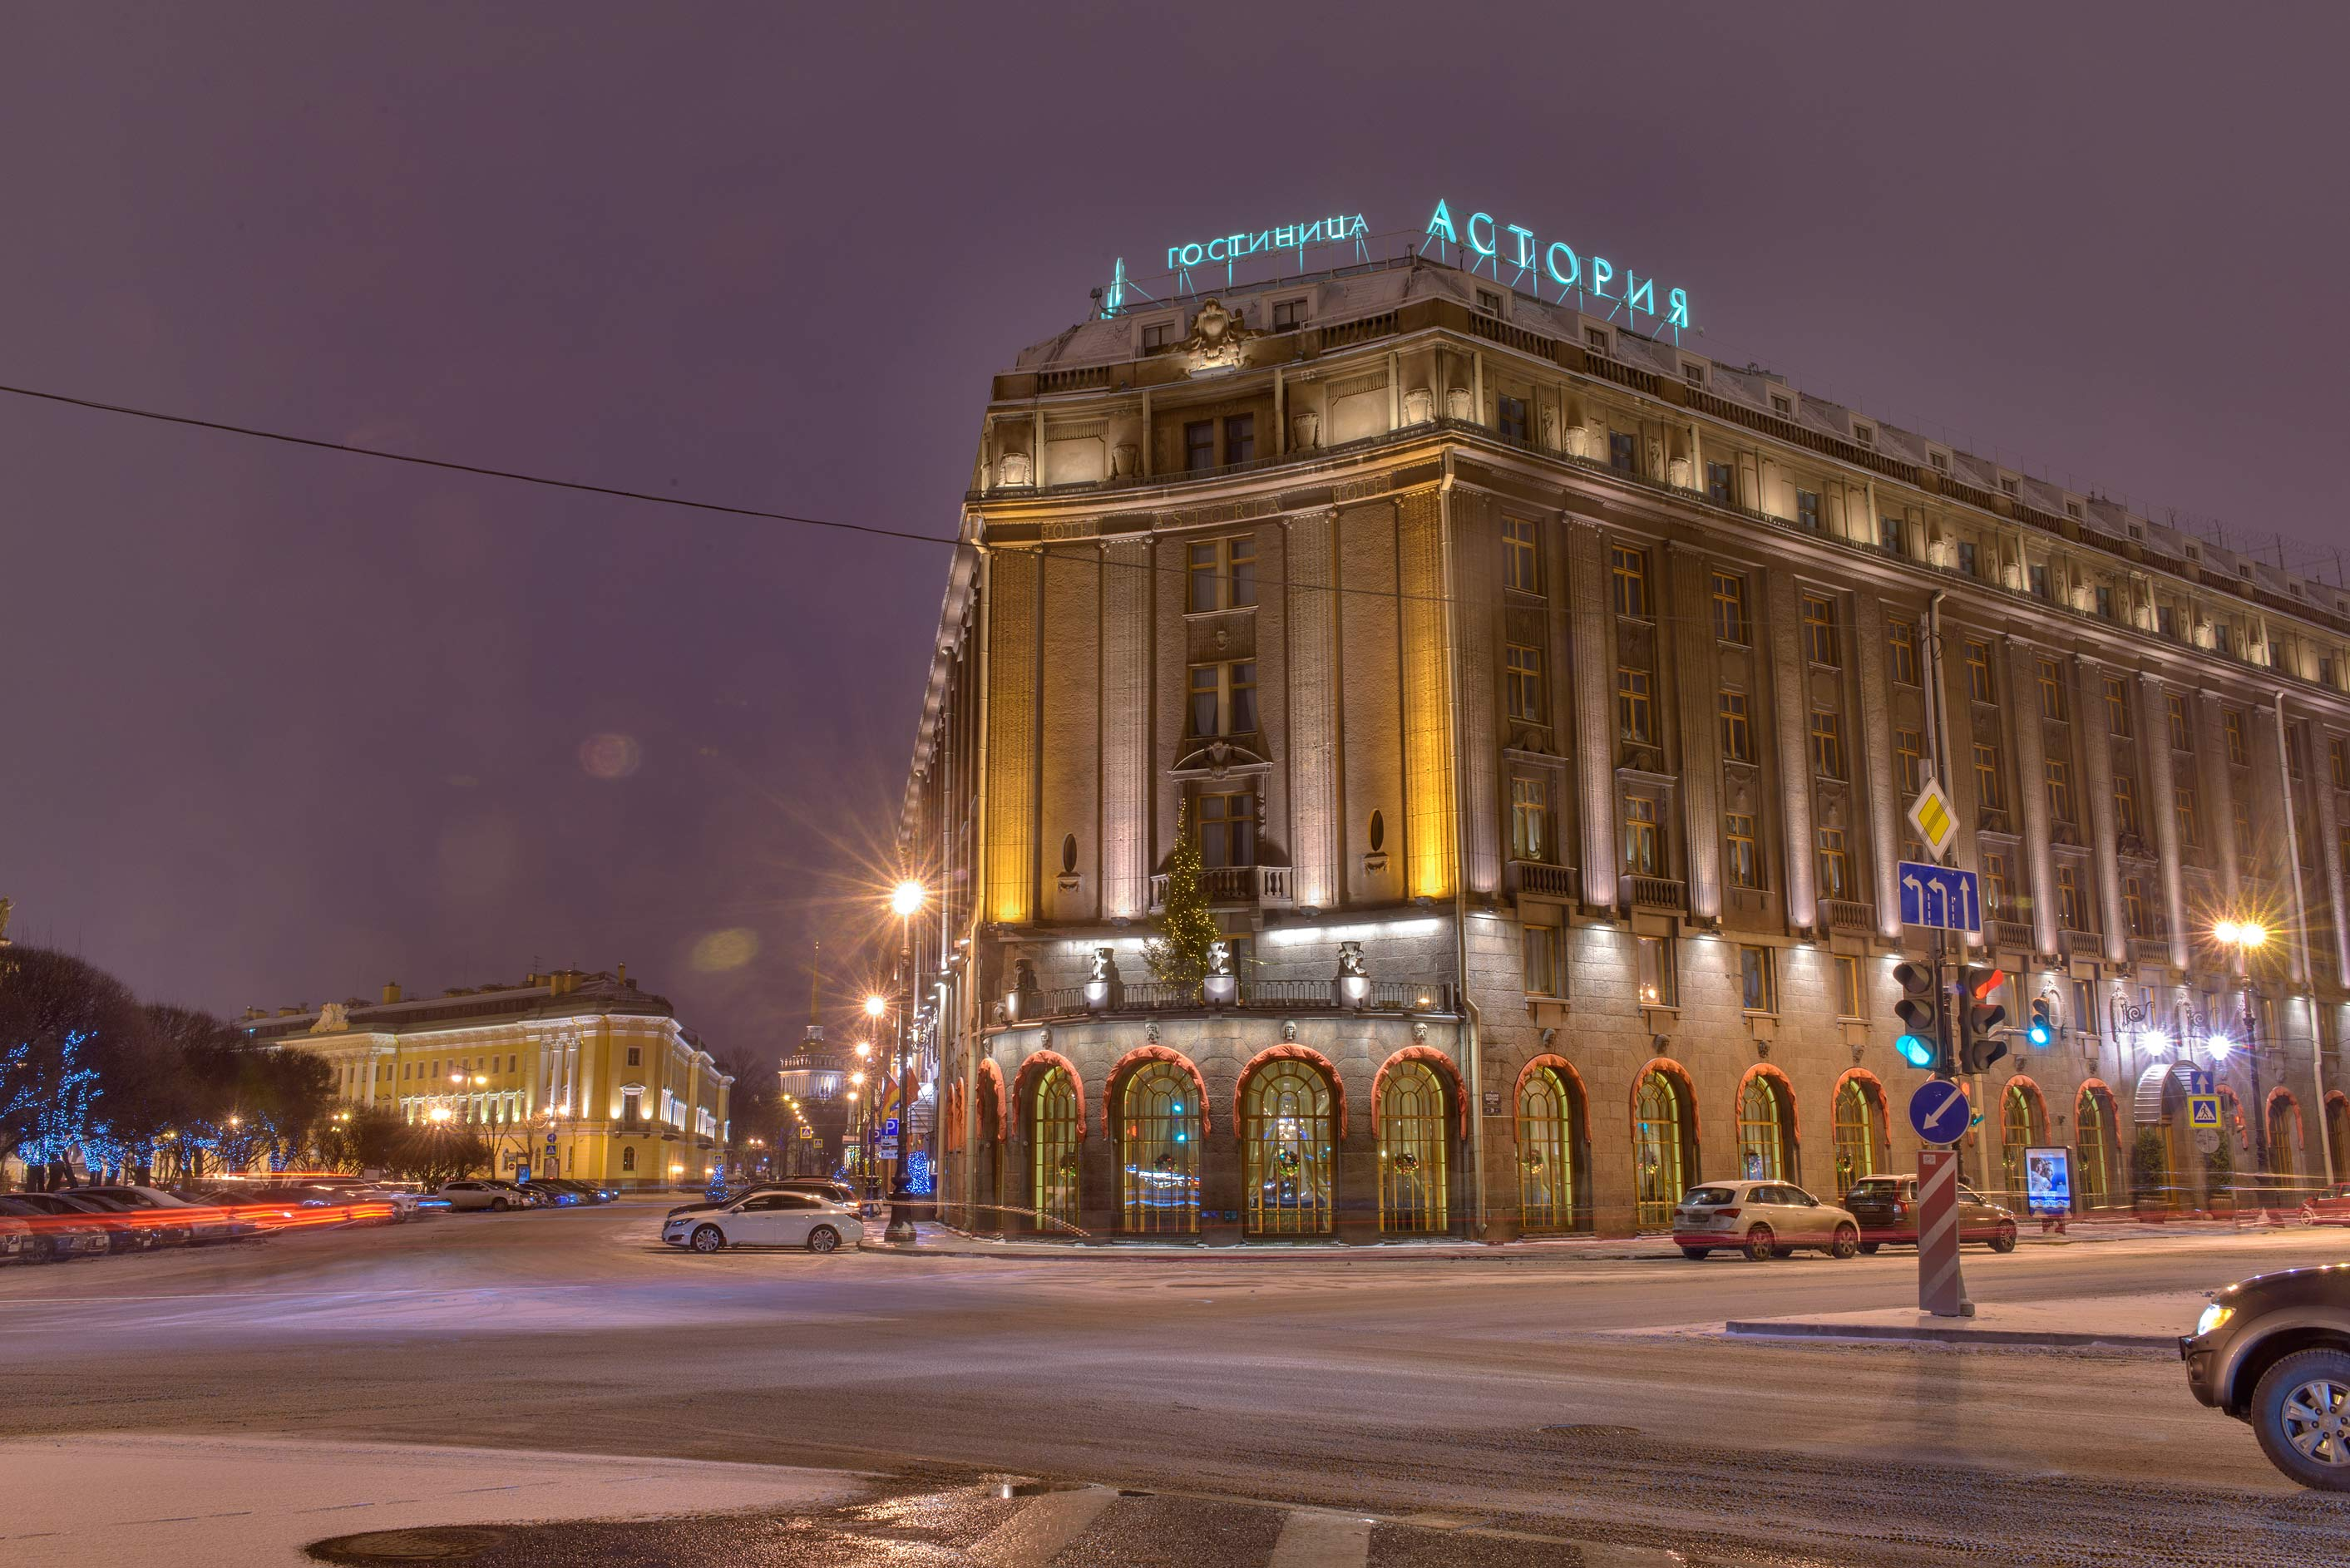 Astoria Hotel on Isakiyevskaya Square. St.Petersburg, Russia